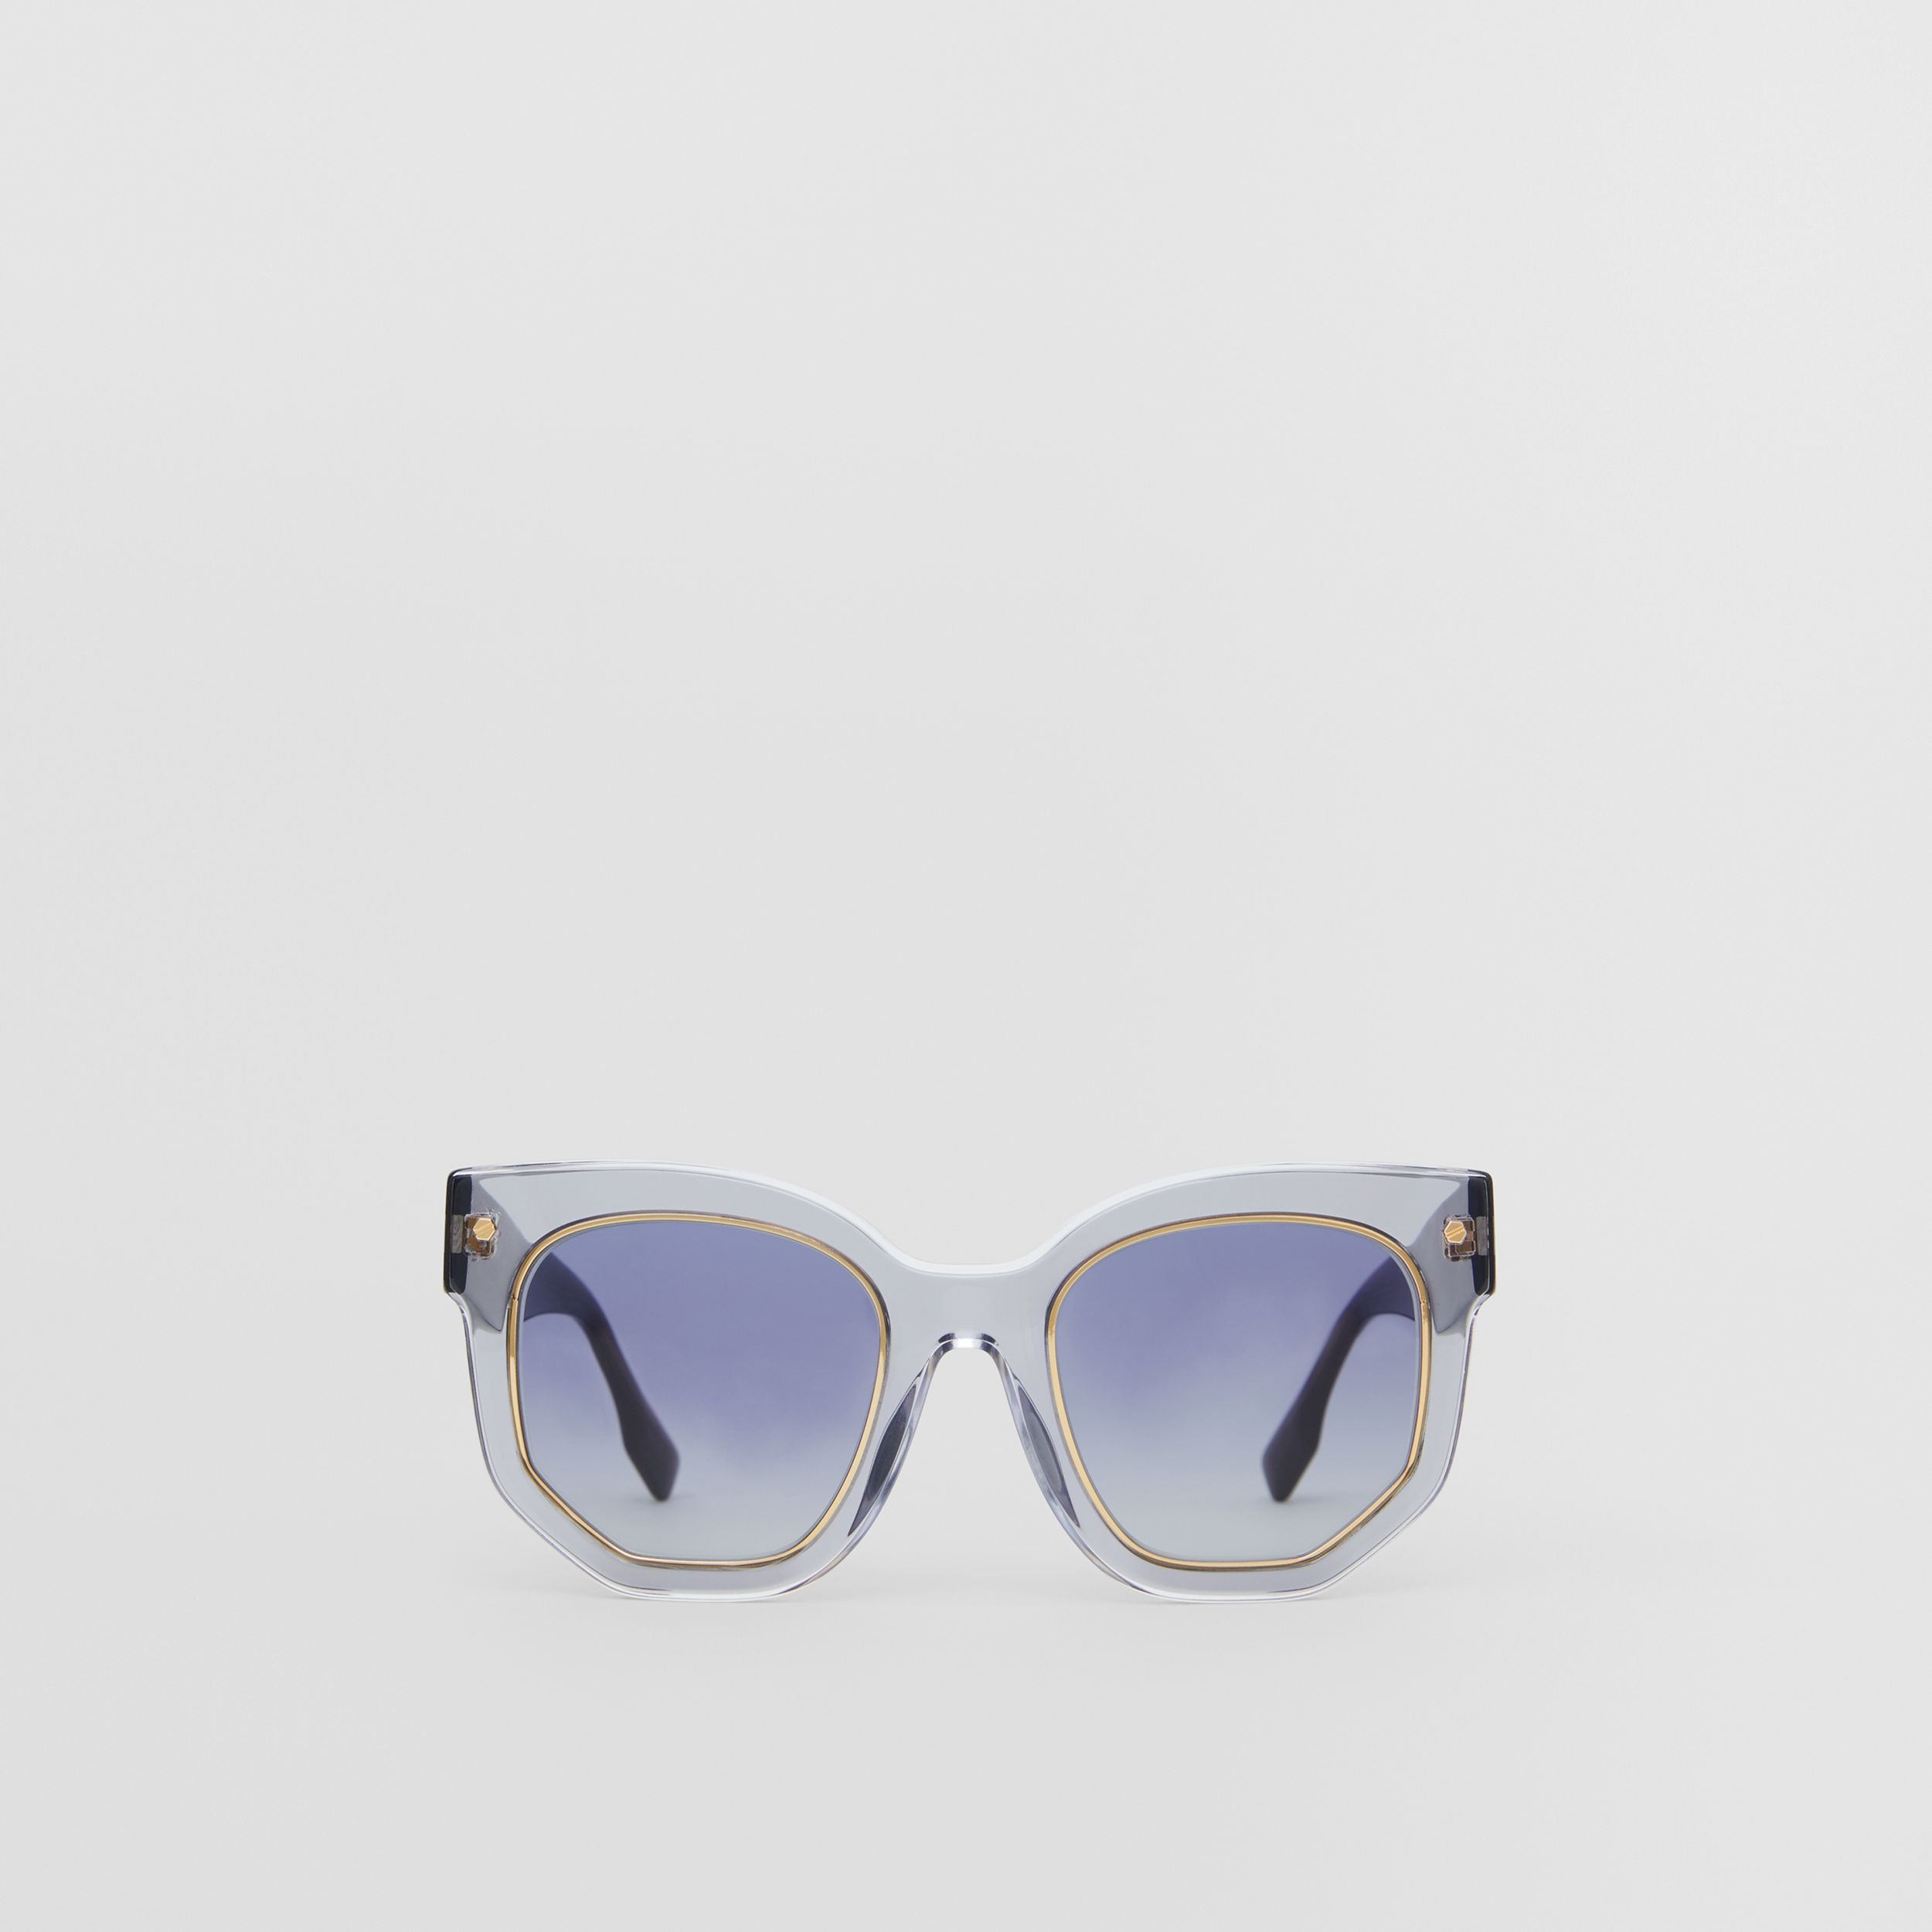 Geometric Frame Sunglasses in Grey - Women | Burberry - 1